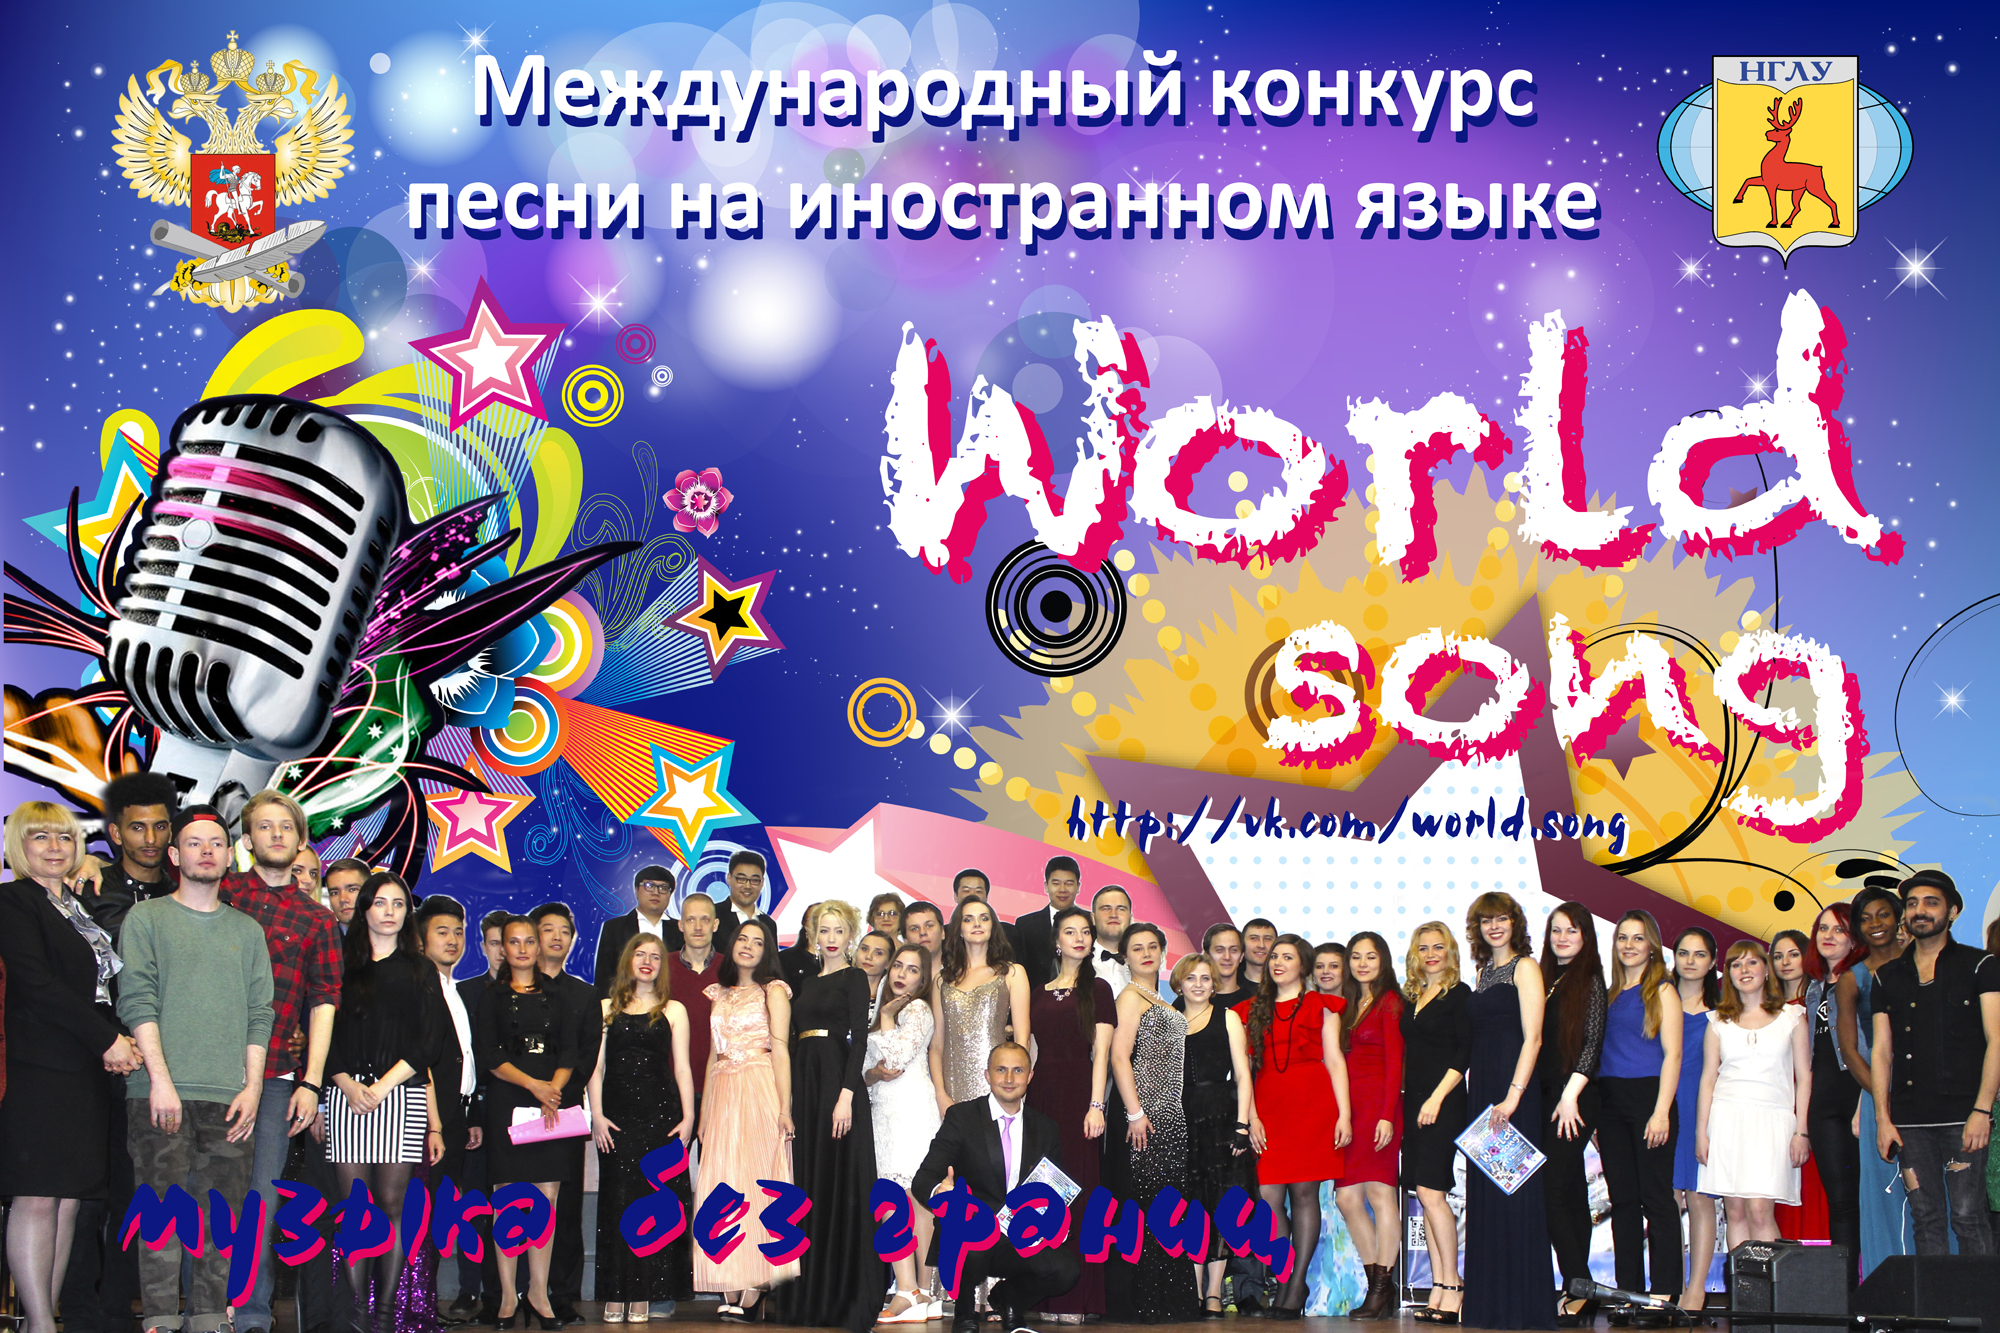 World Song - 2017